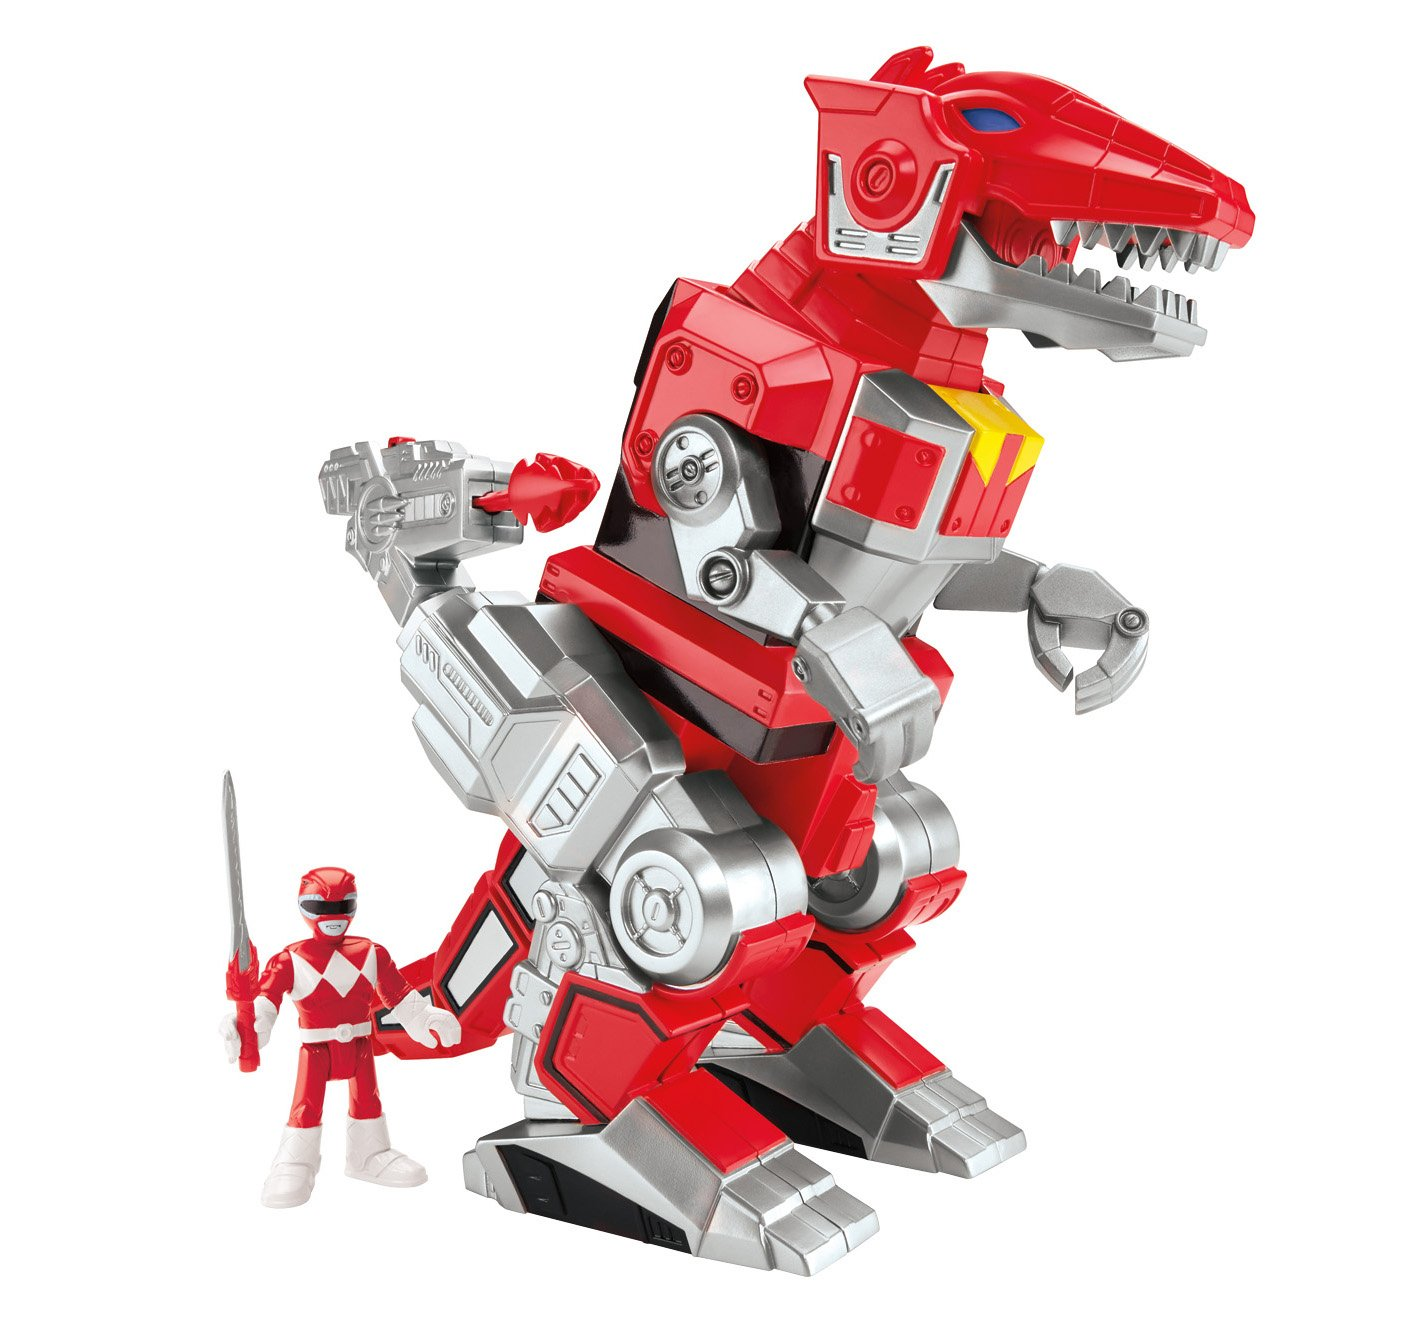 Fisher-Price Imaginext Power Rangers Red Ranger and T-rex Zord Fisher Price CJP64